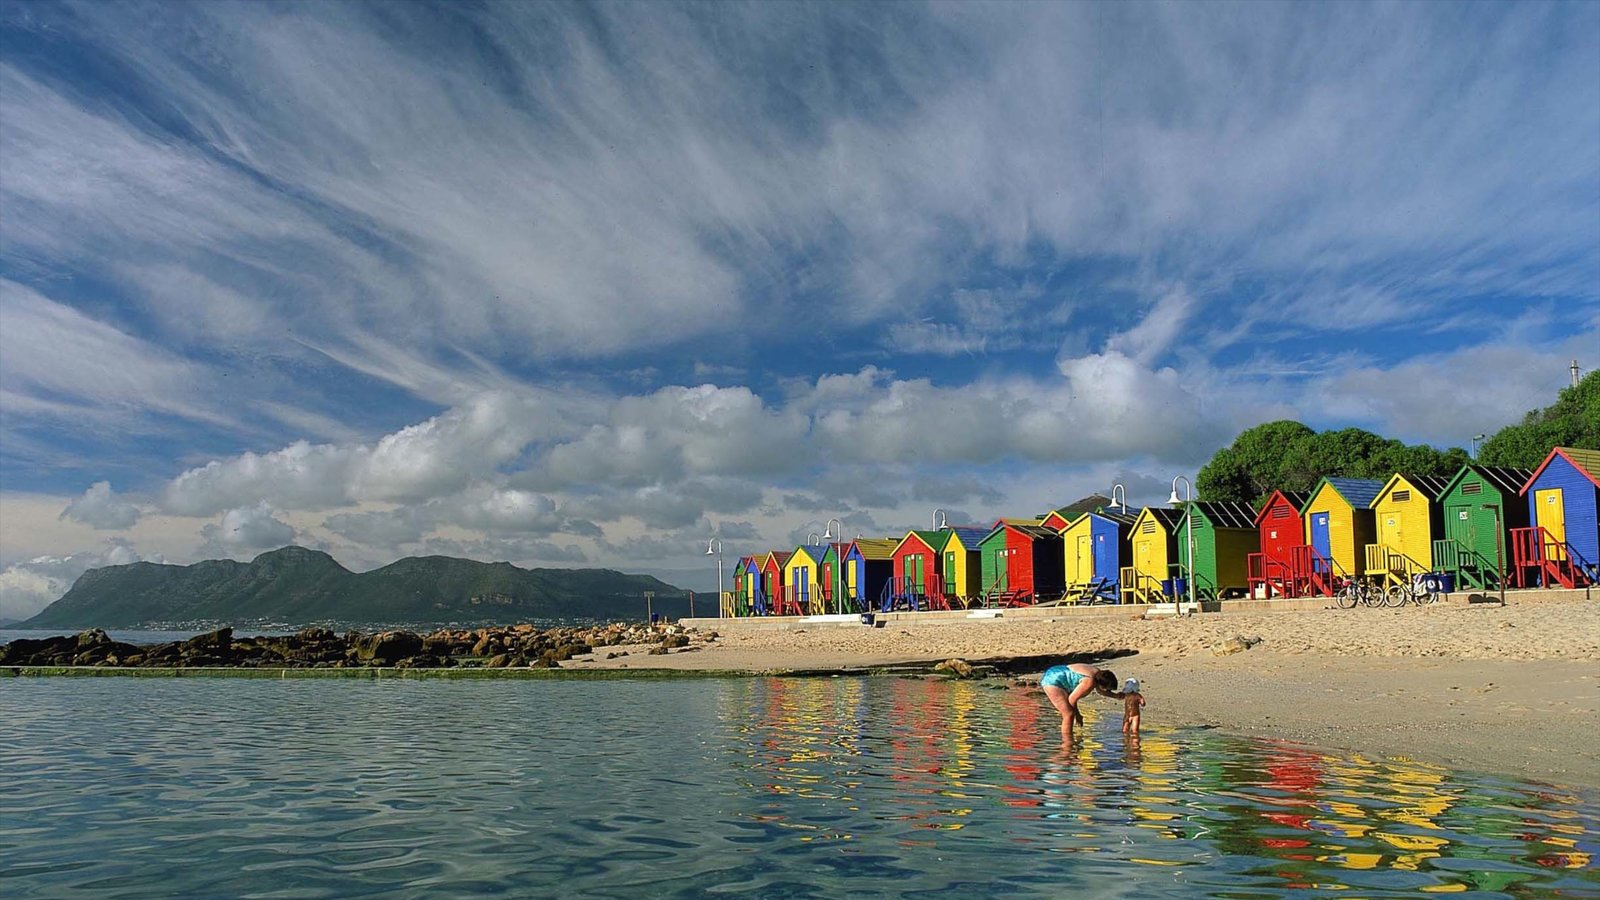 Cape Town featuring a sandy beach and general coastal views as well as a family